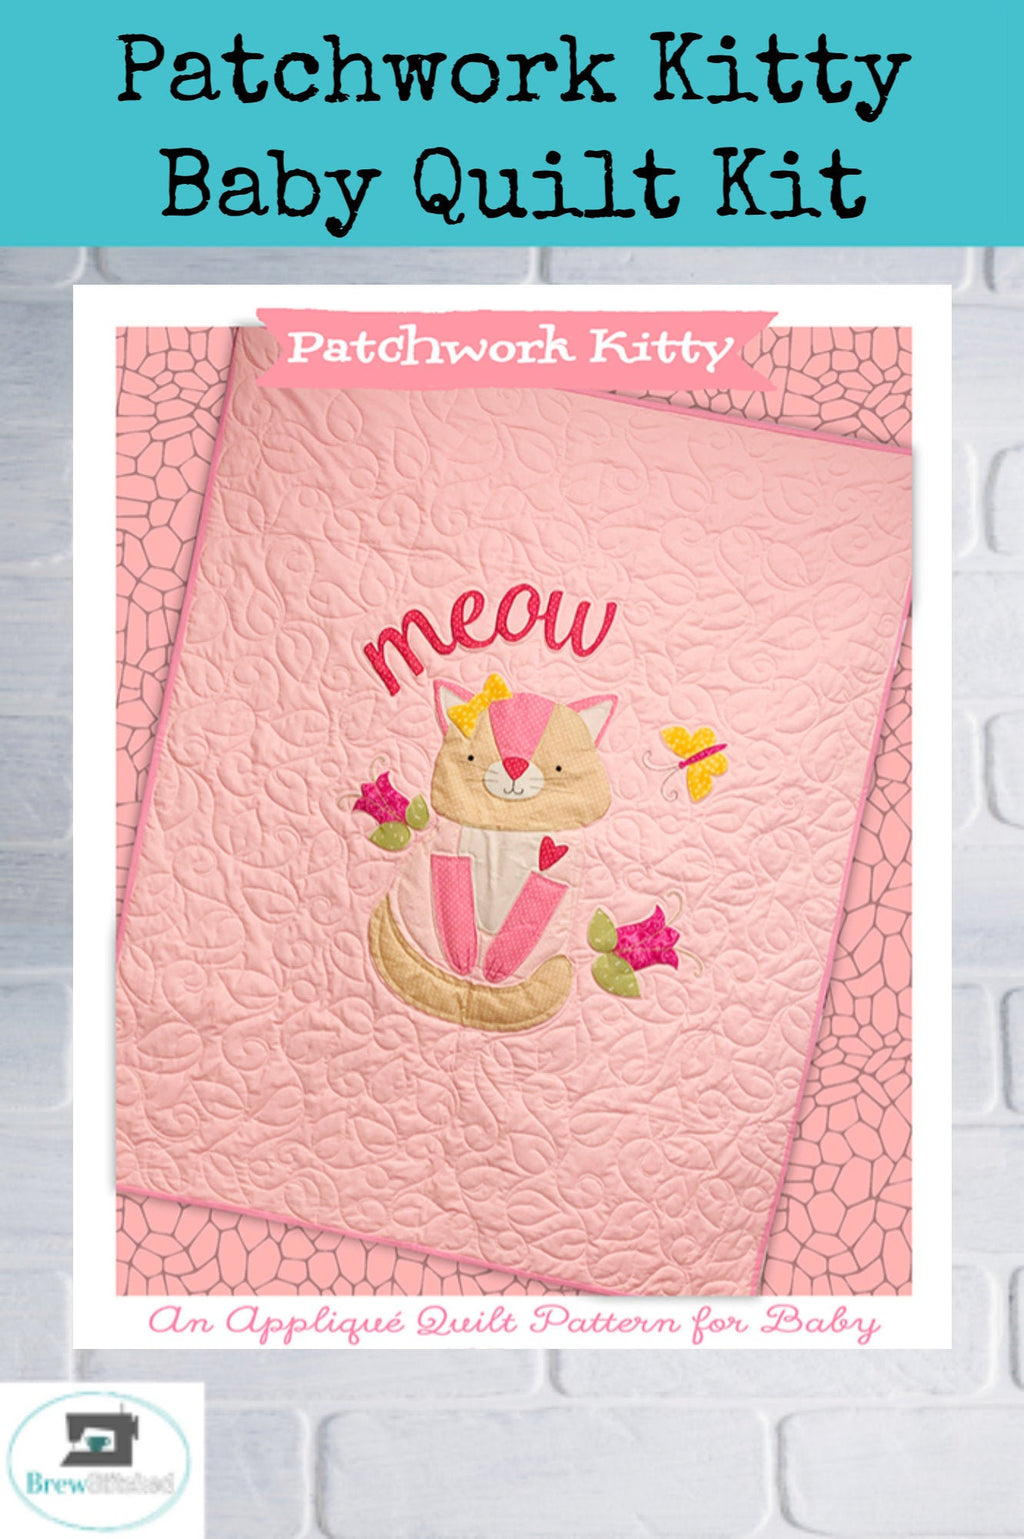 Patchwork Kitty Baby Quilt Kit - brewstitched.com